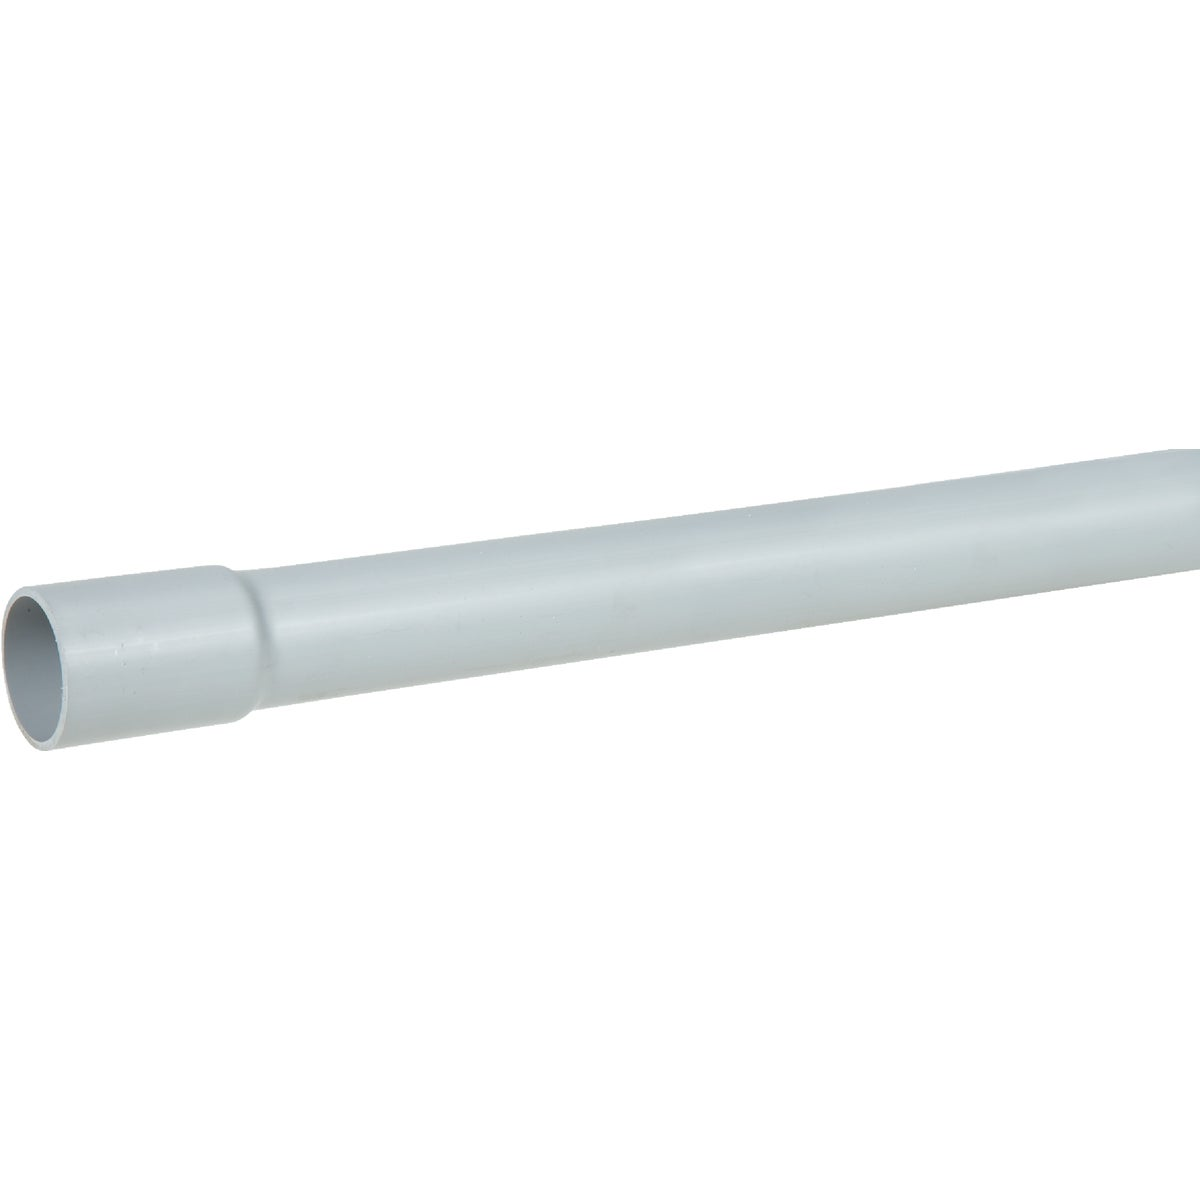 "1"" SCH80 10' CONDUIT - 49408-010 by Prime Conduit"